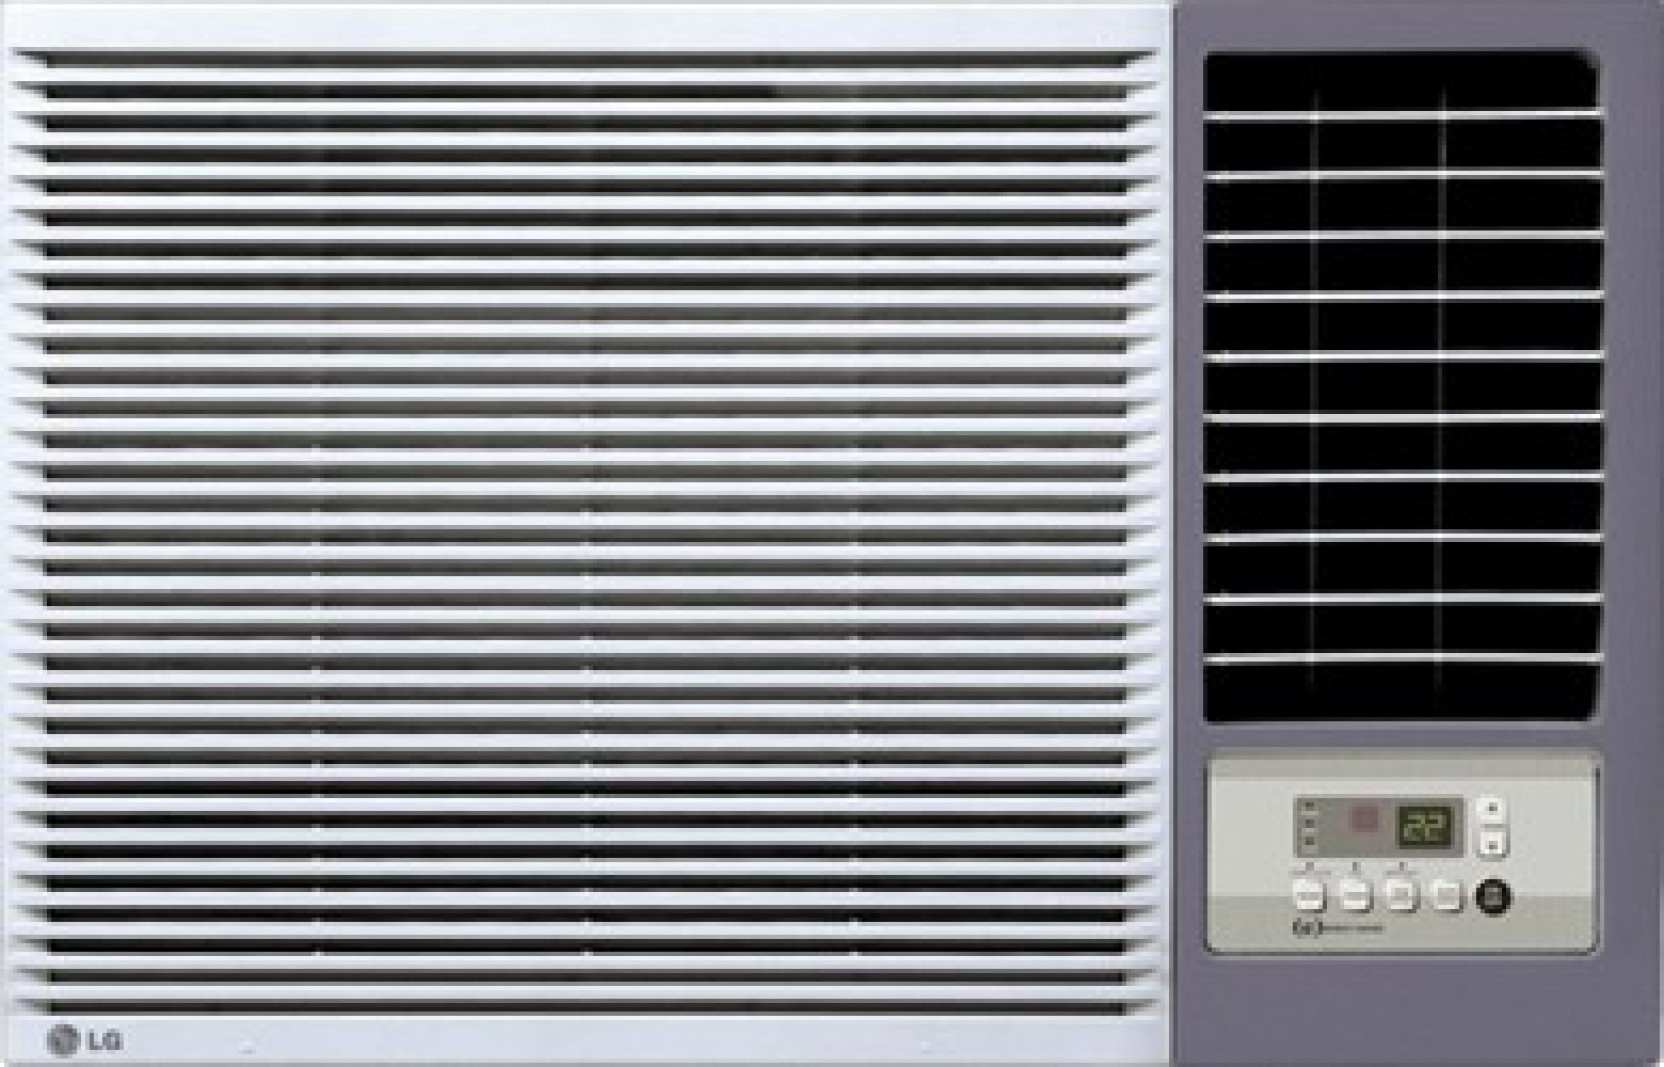 Buy lg 1 5 ton 5 star window ac white for 1 5 ton window ac price india